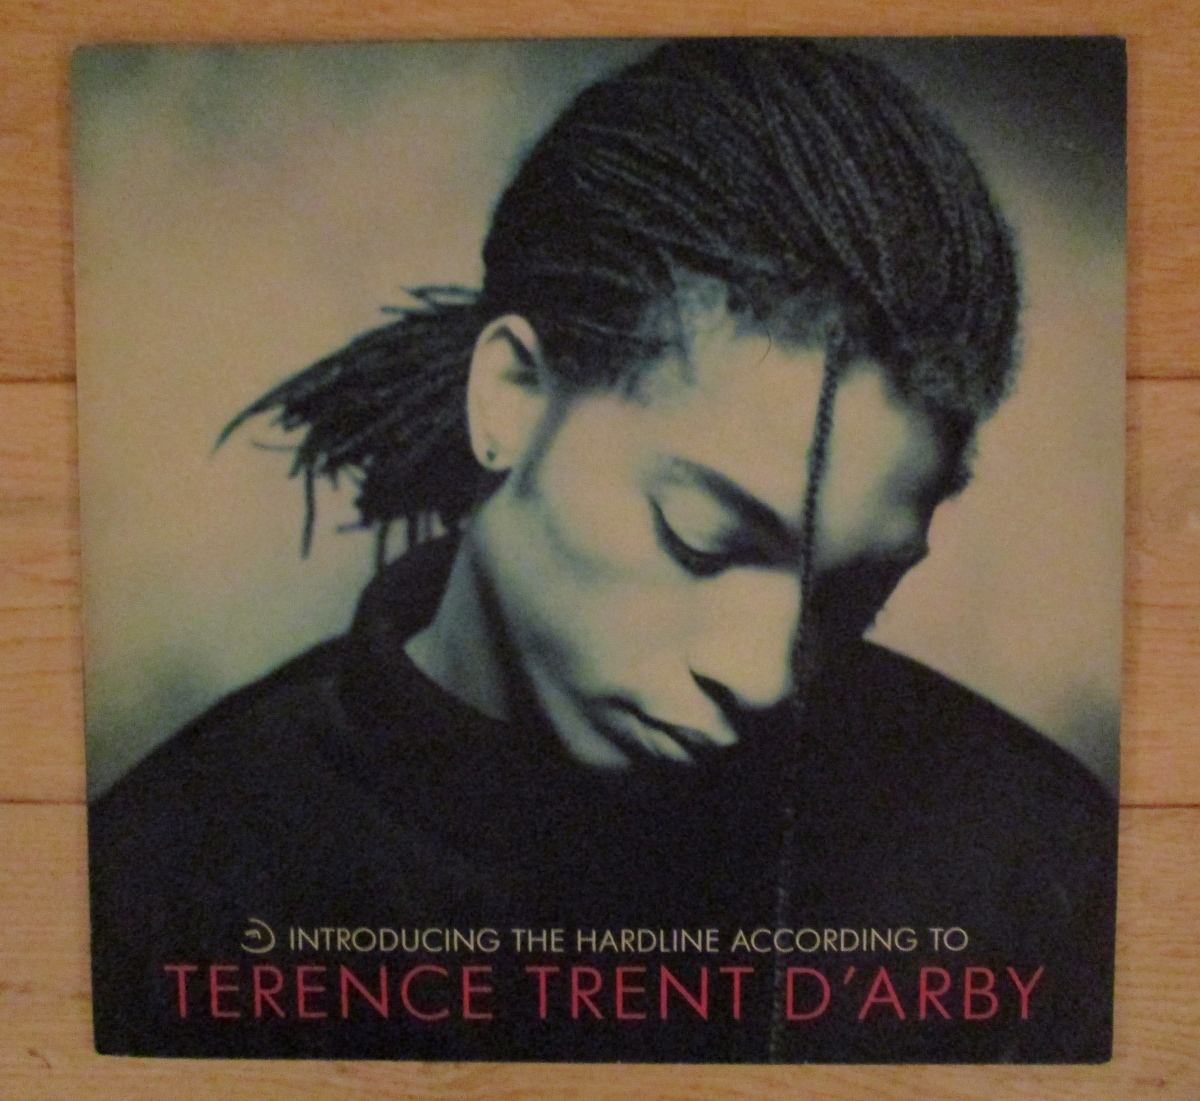 Vintage Vinyl in the charity shop: Terence Trent D'Arby